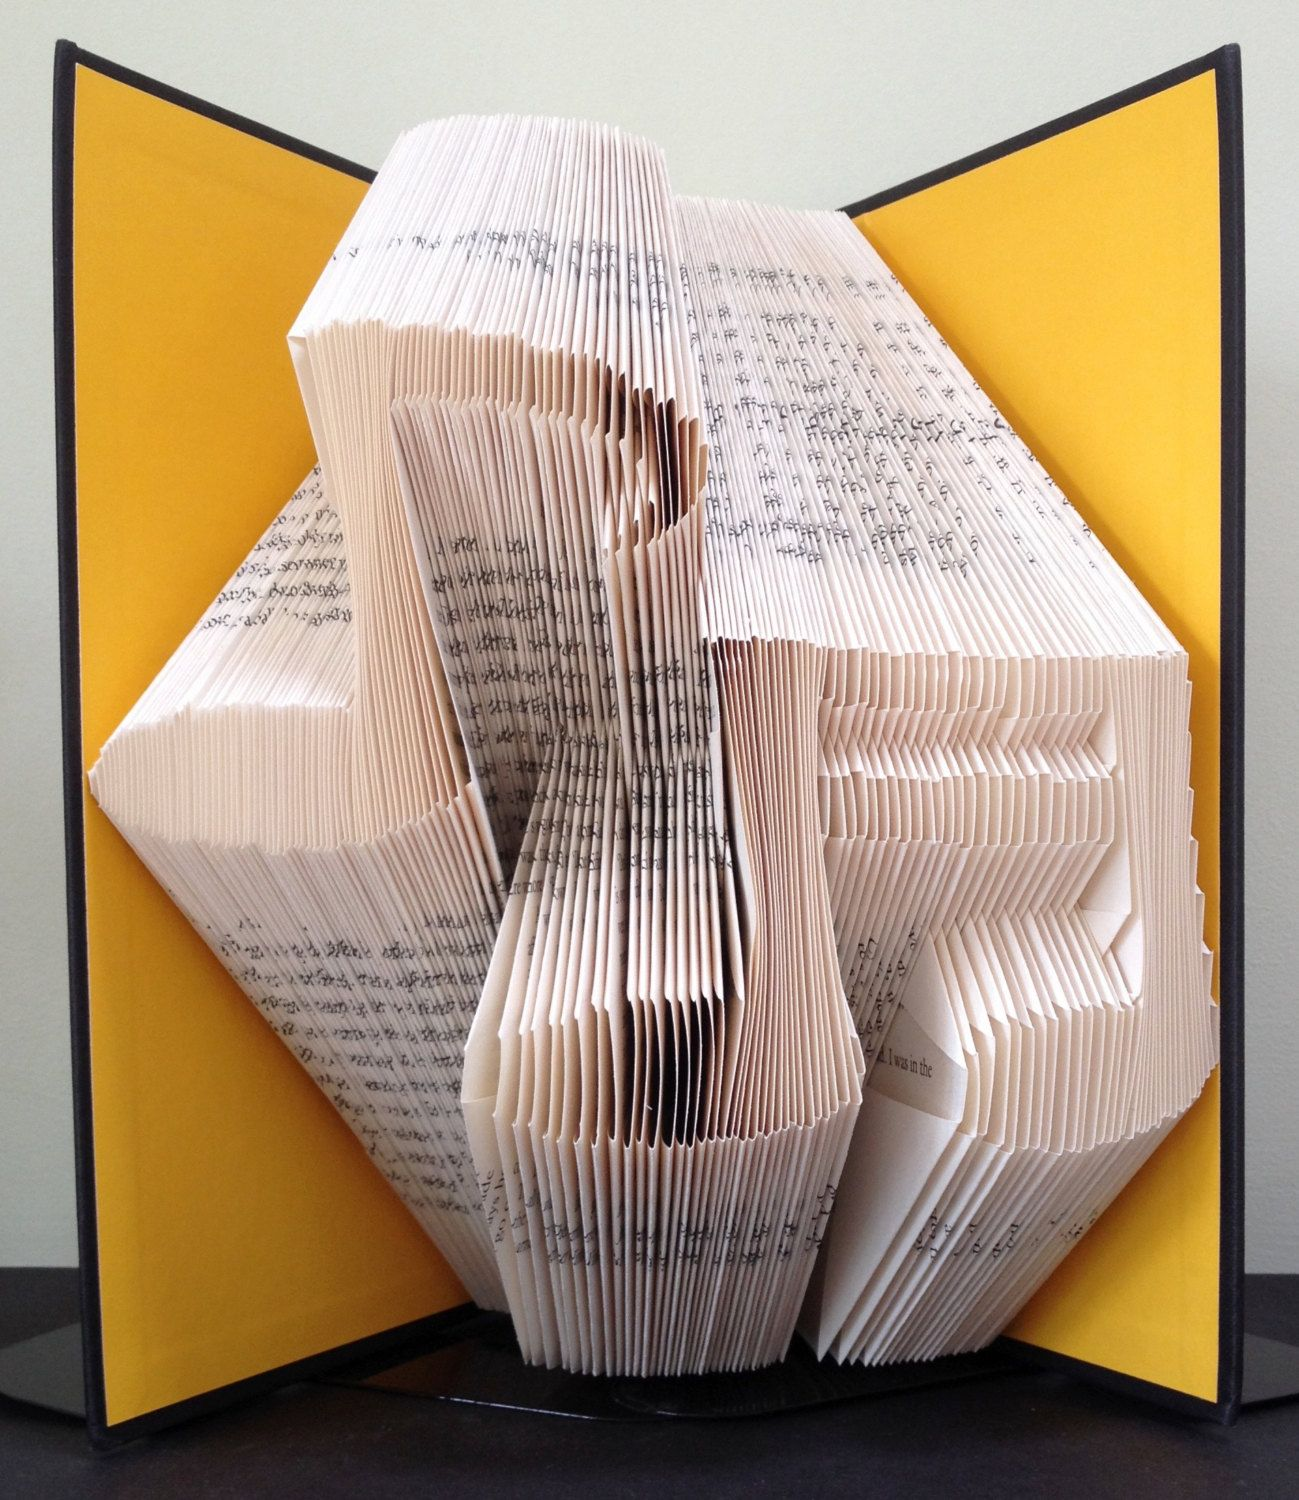 MUSICAL NOTES   Book Folding Pattern. DIY Gift For Book Art. Template With  Step By Step Instructions. Very Easy, No Measuring Required